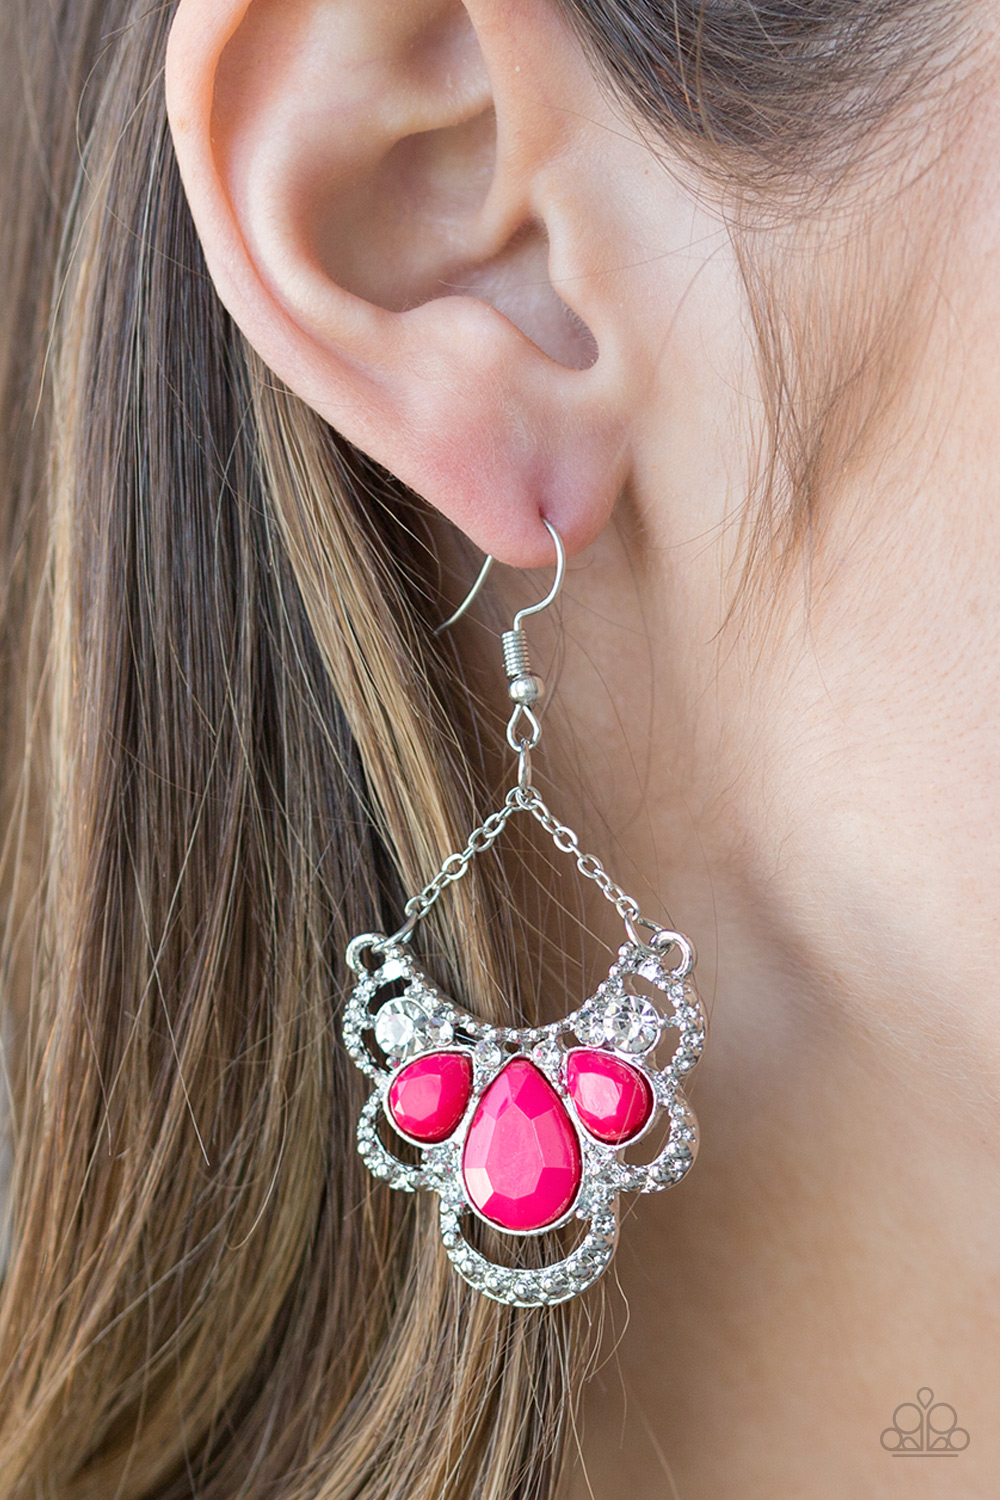 Caribbean Royalty Hot Pink Chandelier Earrings $5 my-bling.com